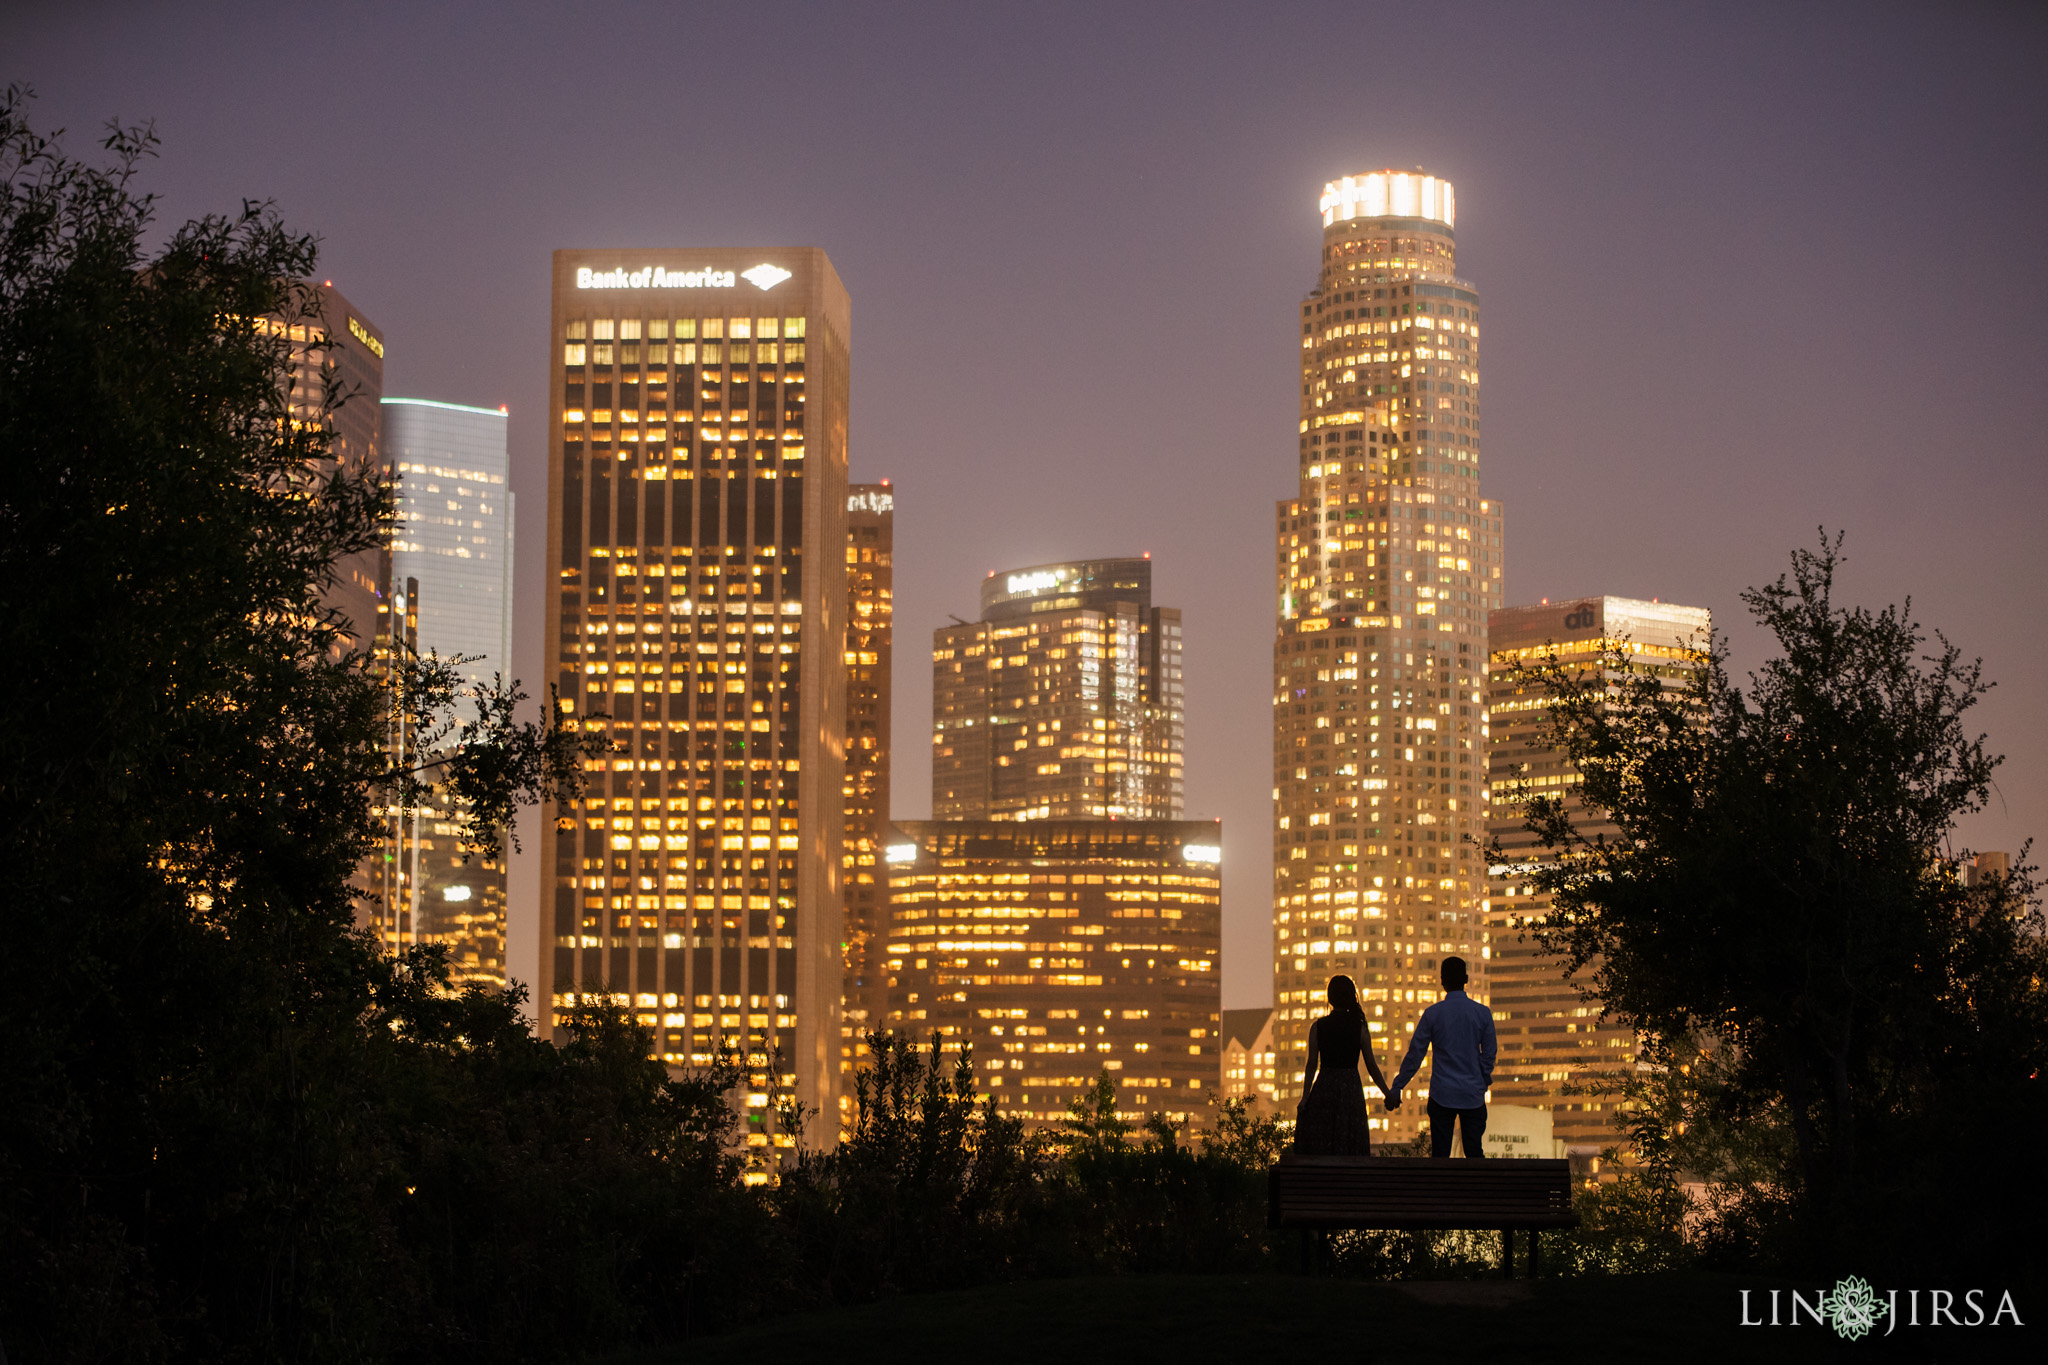 14 Vista Hermosa Natural Park Los Angeles Engagement Photography